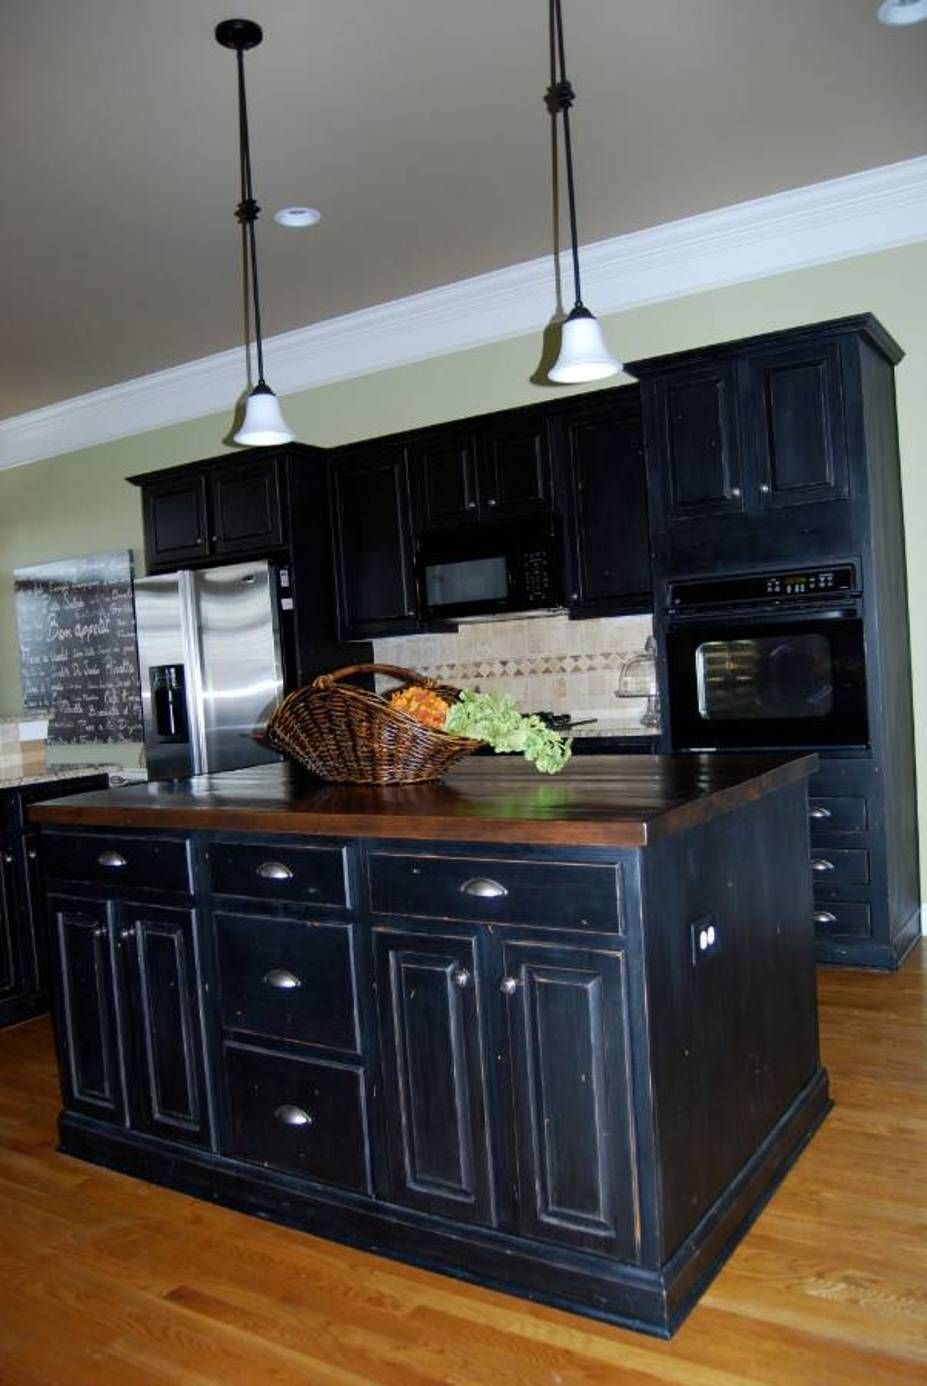 Distressed Black Kitchen Cabinets Centerpiece For Table Furniture Suave With Silver Refrigerator And Island Butcherblock Countertop